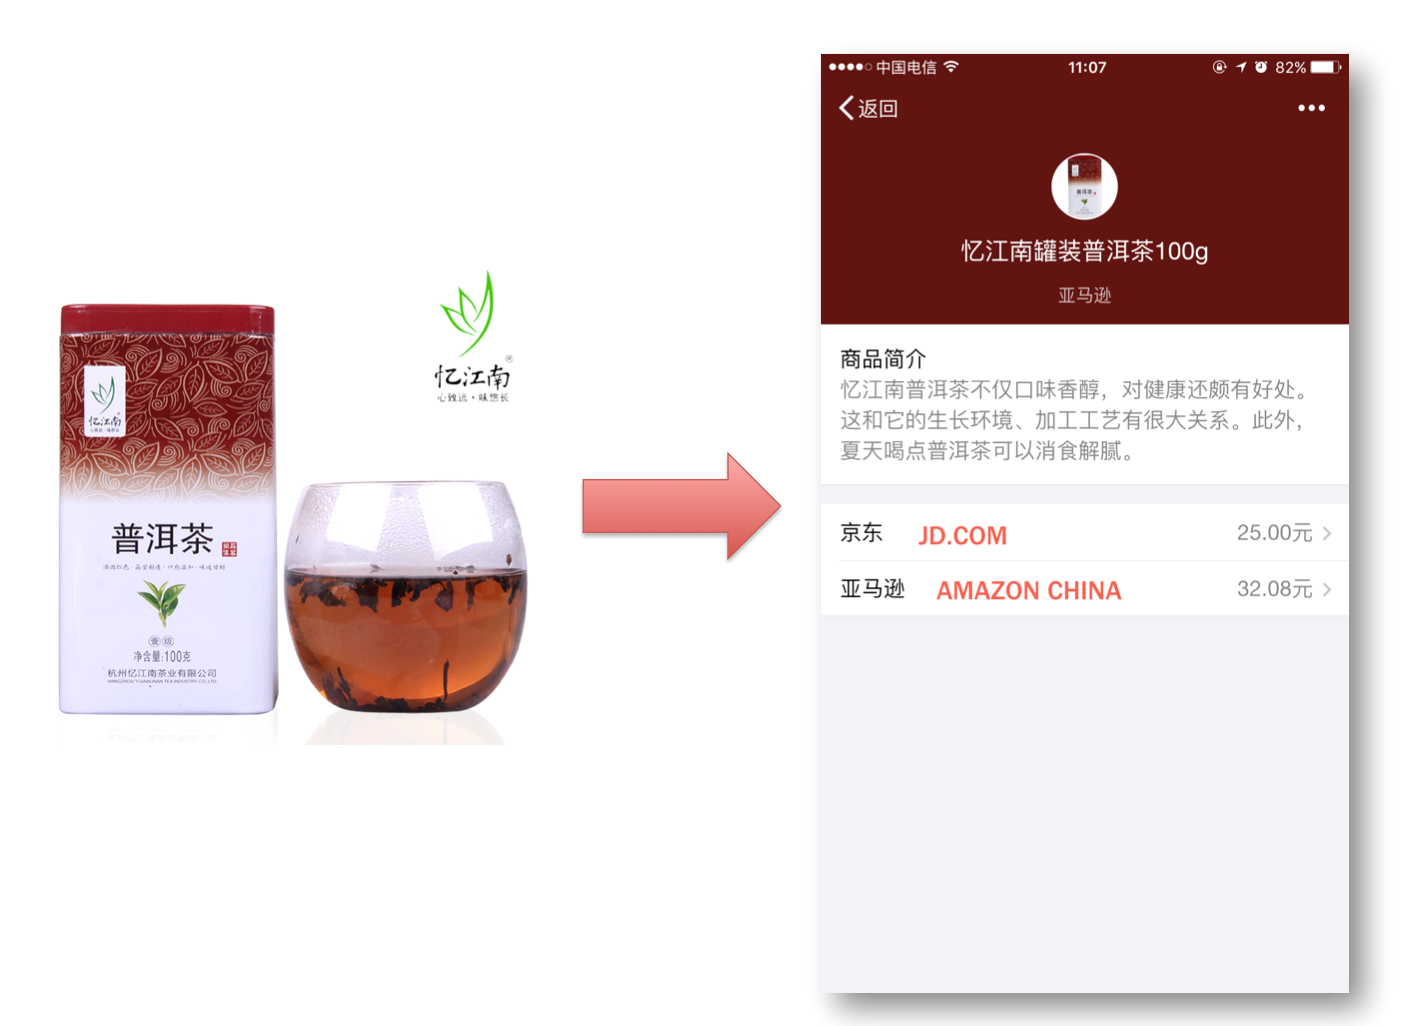 WeChat eCommerce barcode scan